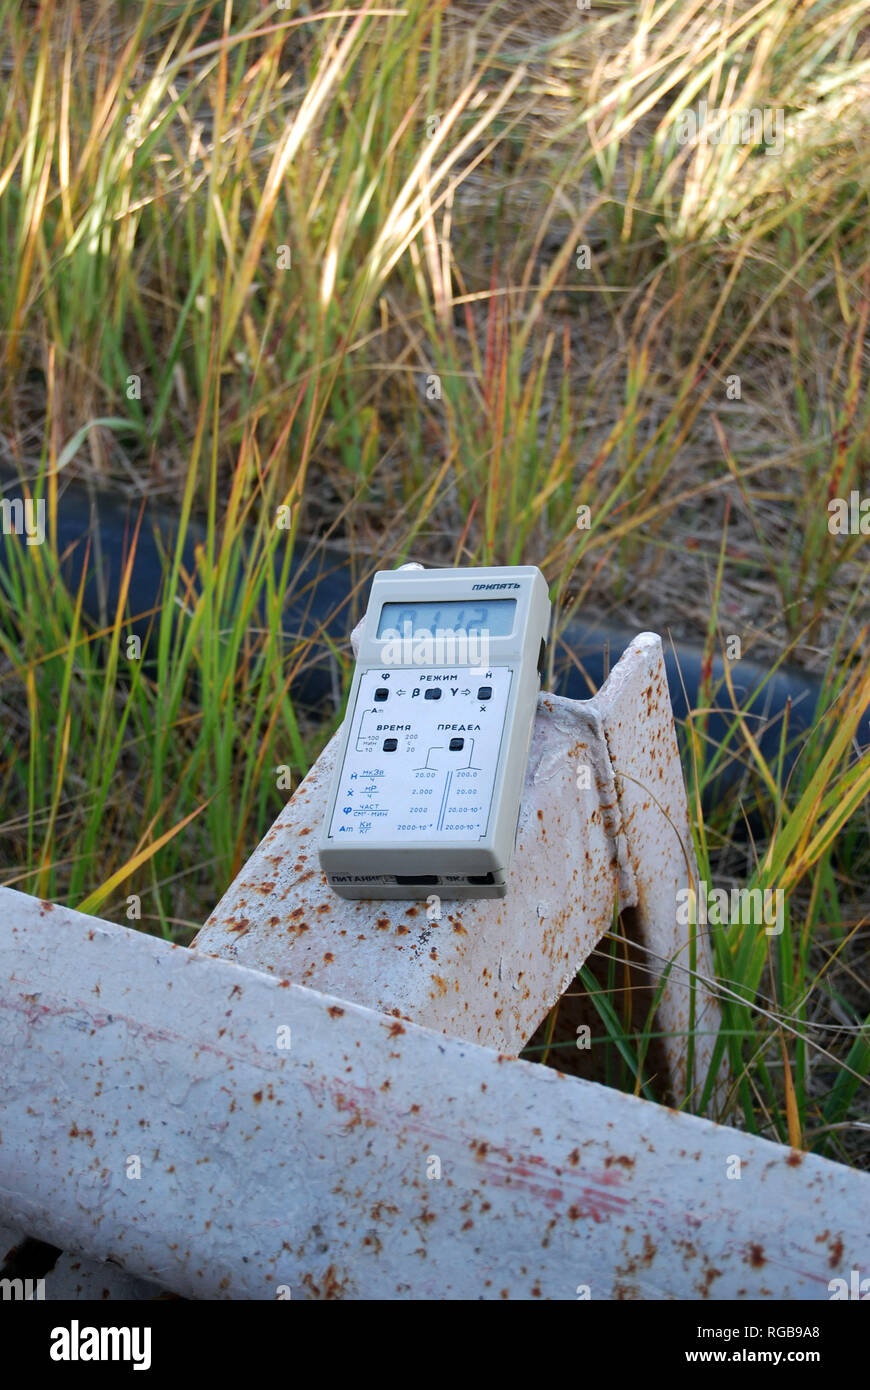 A Geiger Counter showing a radiation reading from within the Chernobyl Exclusion Zone in Ukraine - Stock Image